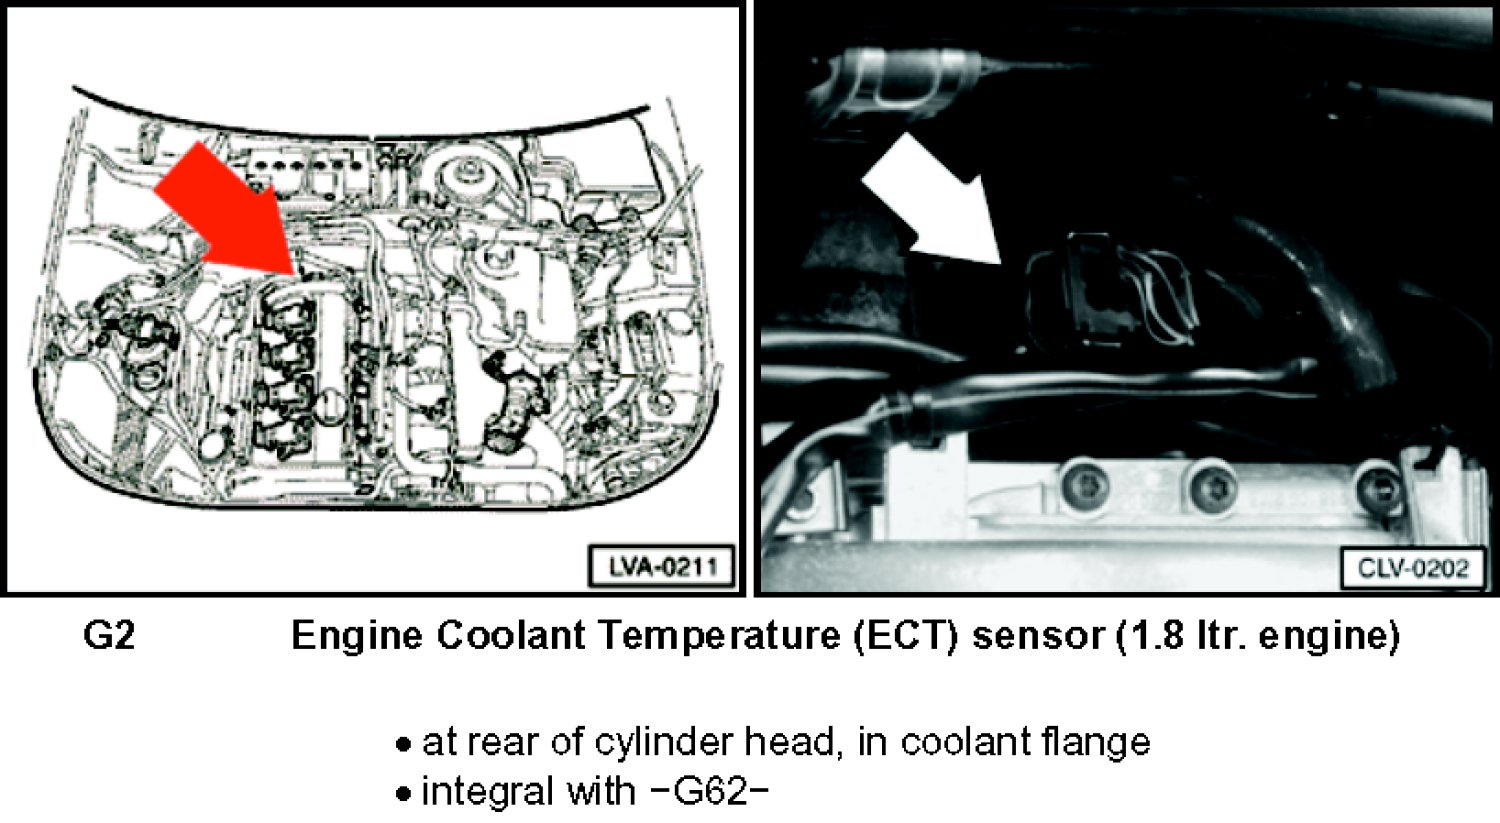 2003 Passat  Where Is The Location Of The Cooling Temperature Sensor  I Am Having The Same P2181